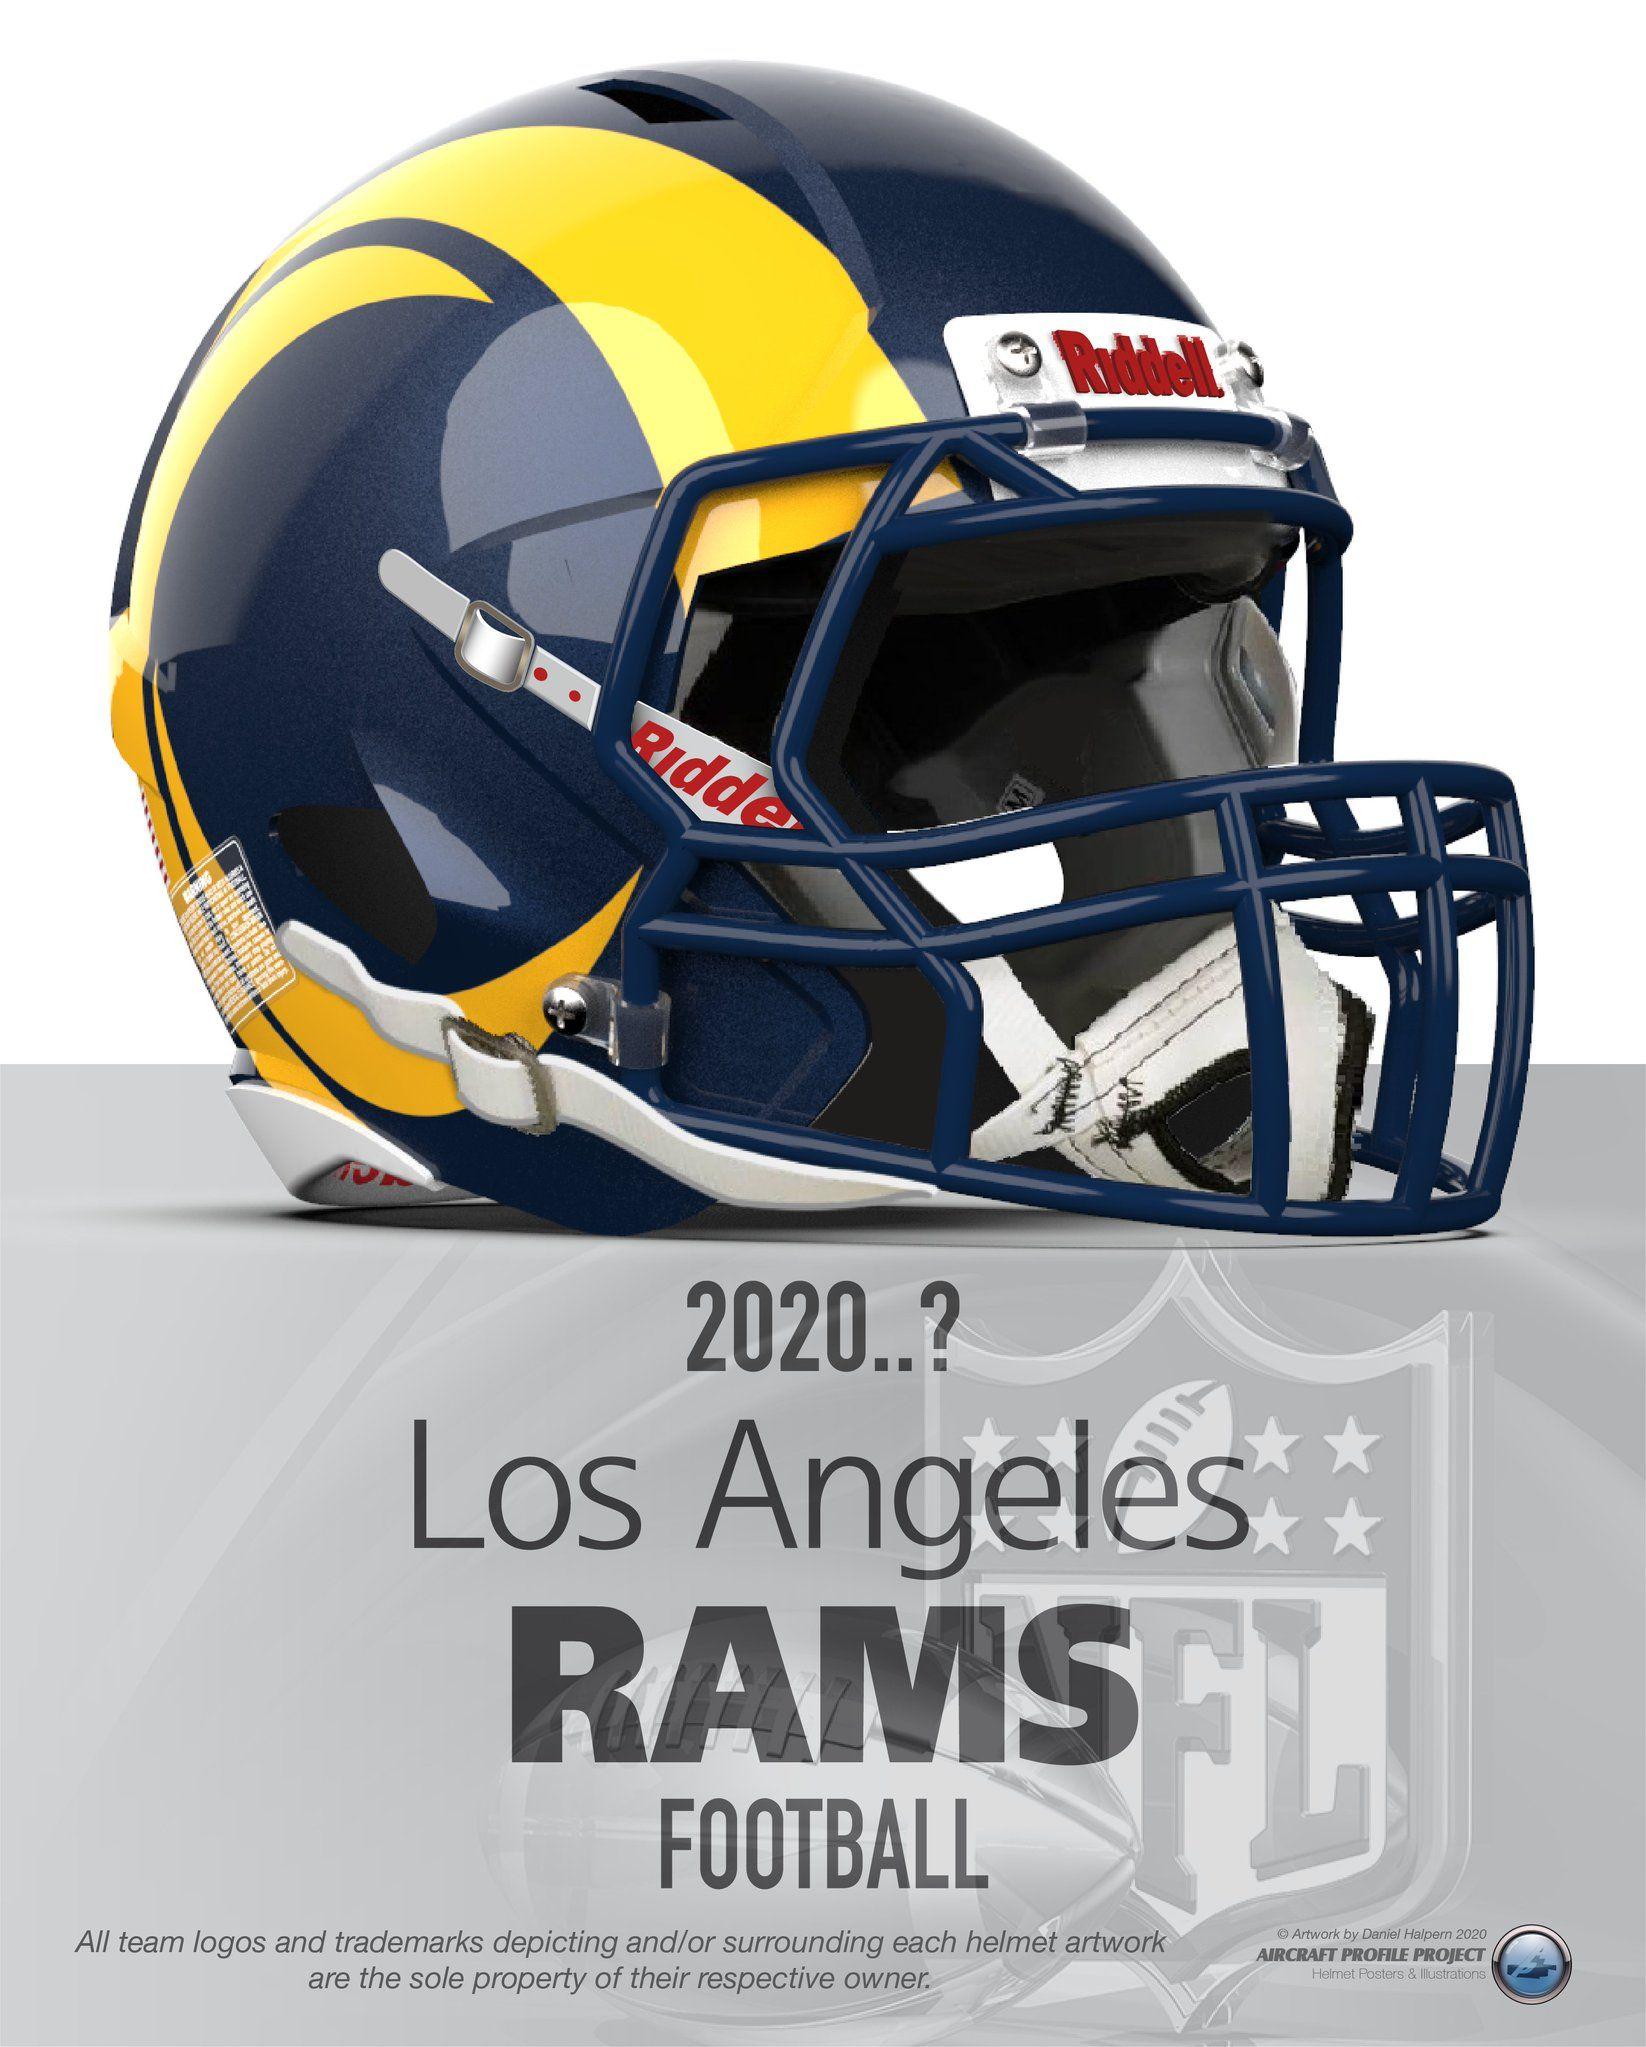 Los Angeles Rams 2020 In 2020 La Rams Rams Football Football Helmets